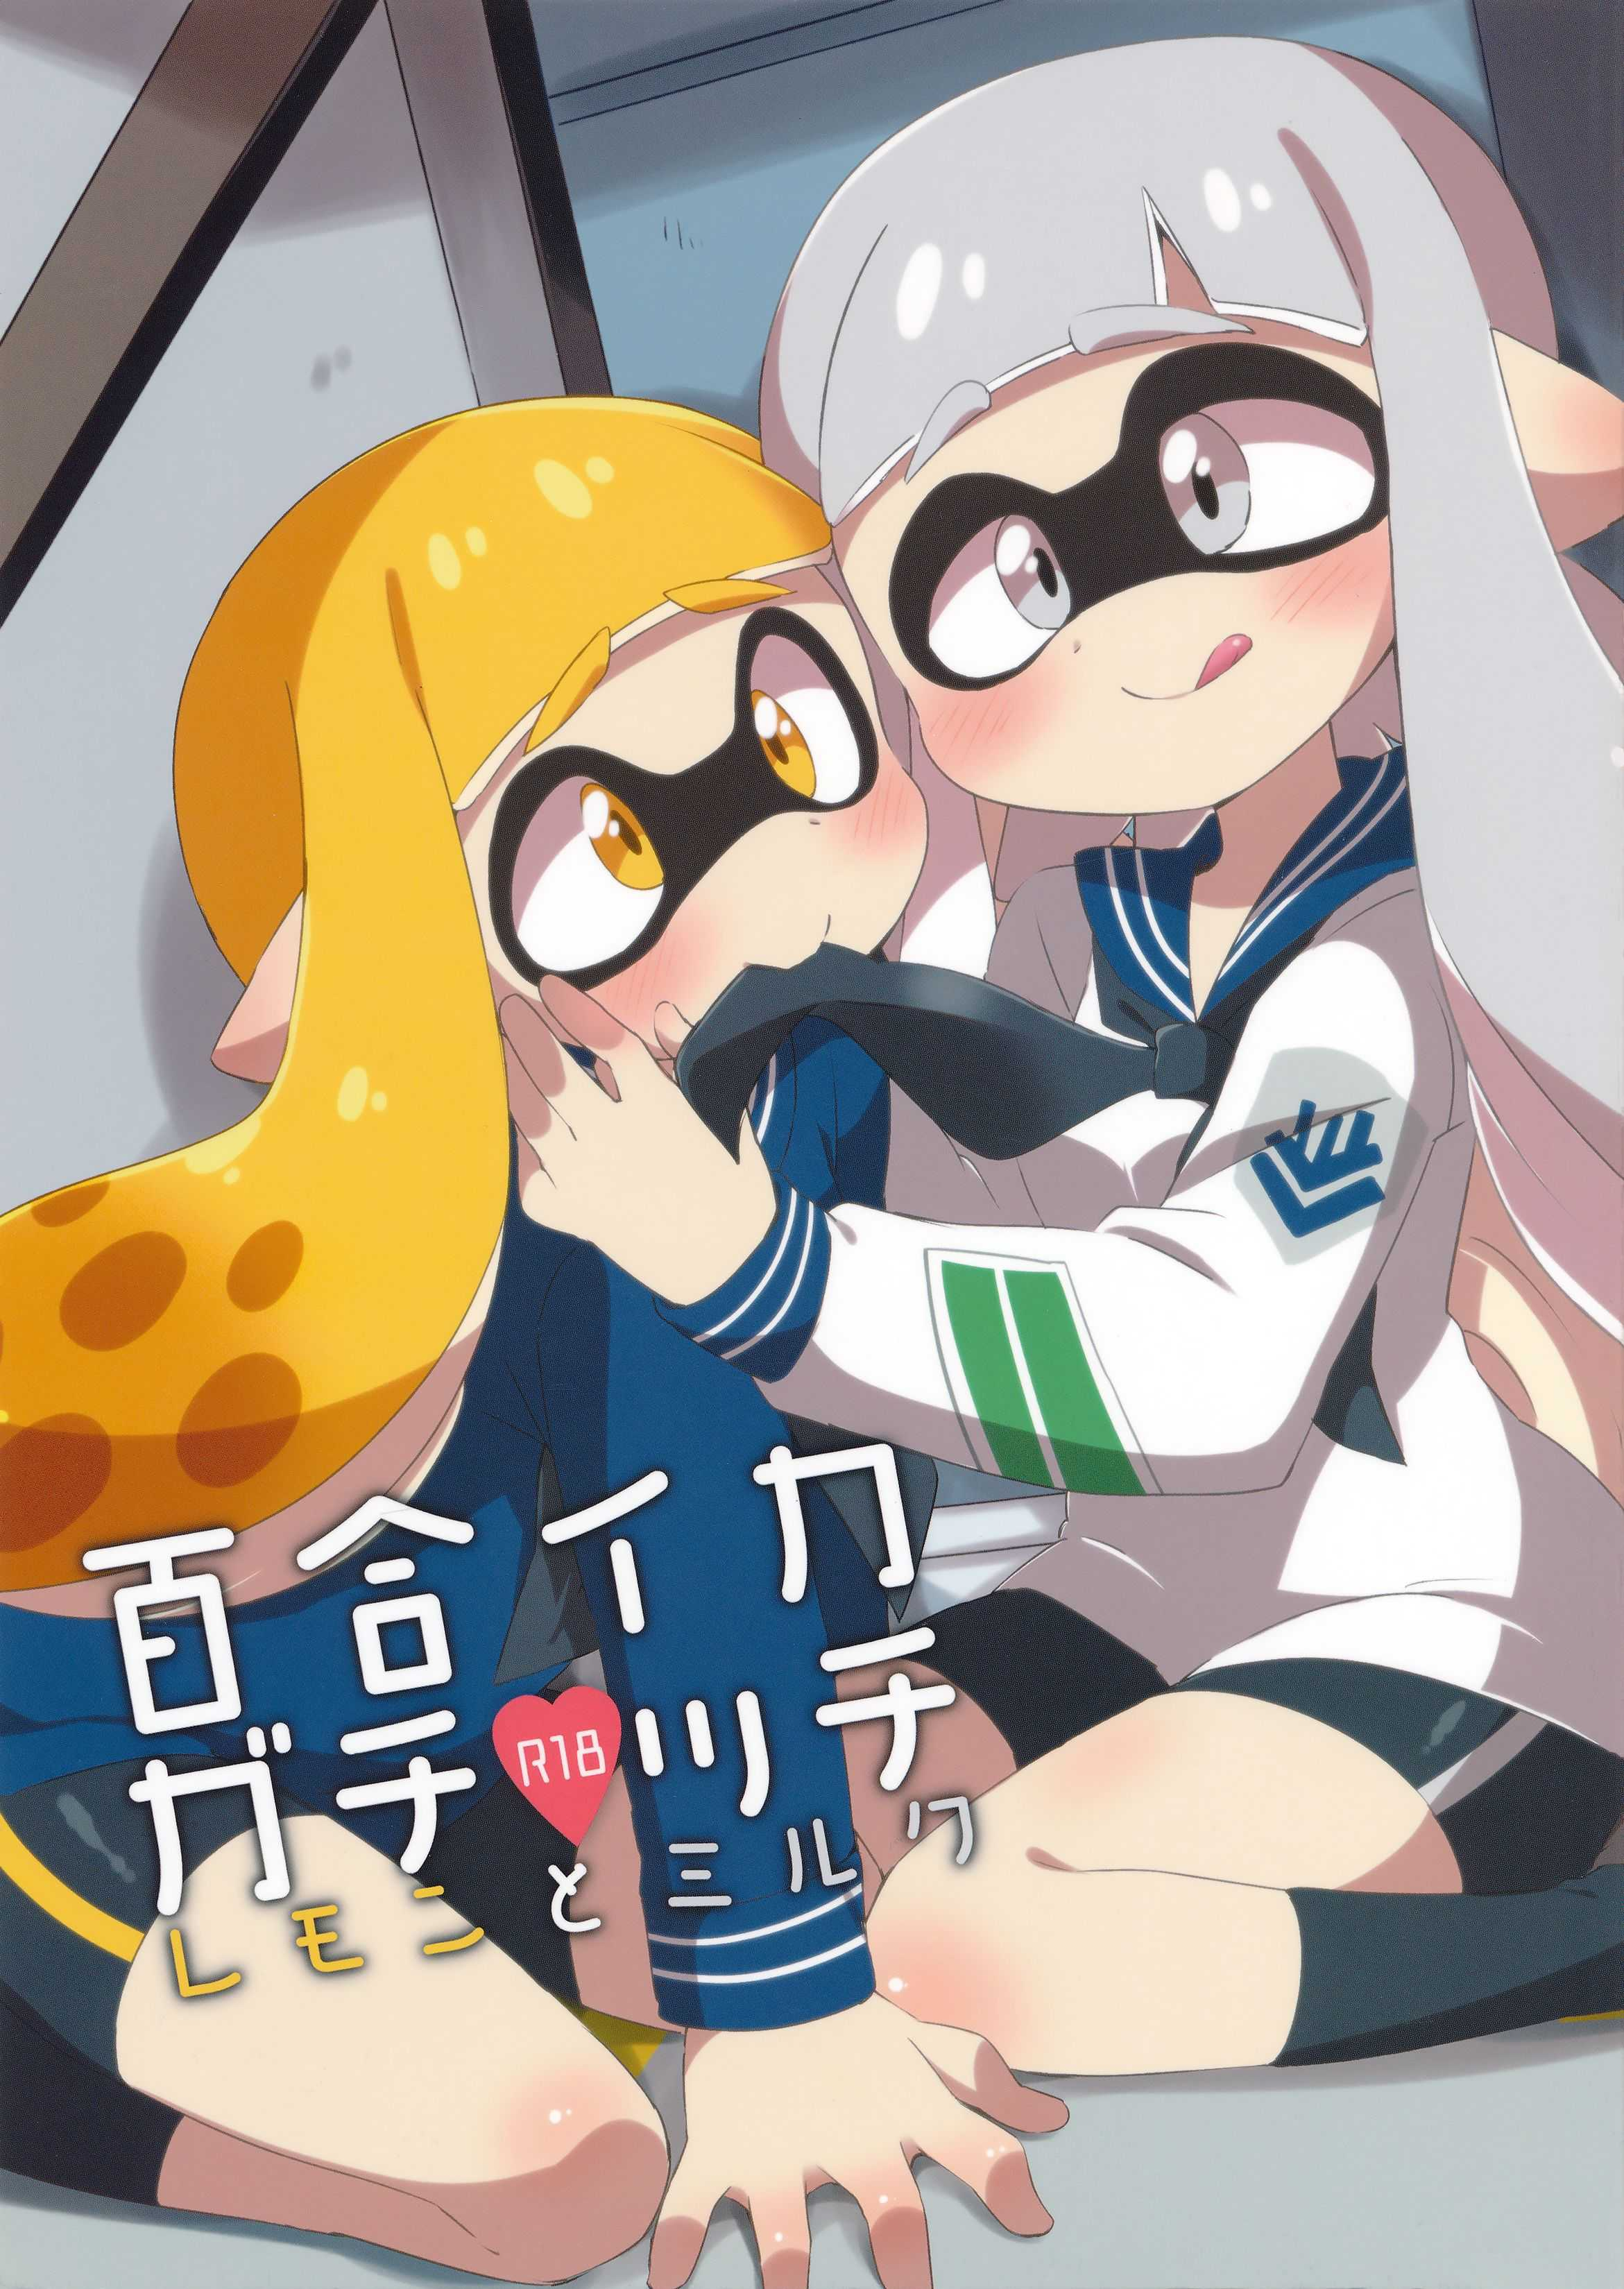 c89-colomonyu-eromame-yuri-ika-gachicchi-lemon-to-milk-super-lewd-yuri-squids-lemon-and-milk-splatoon